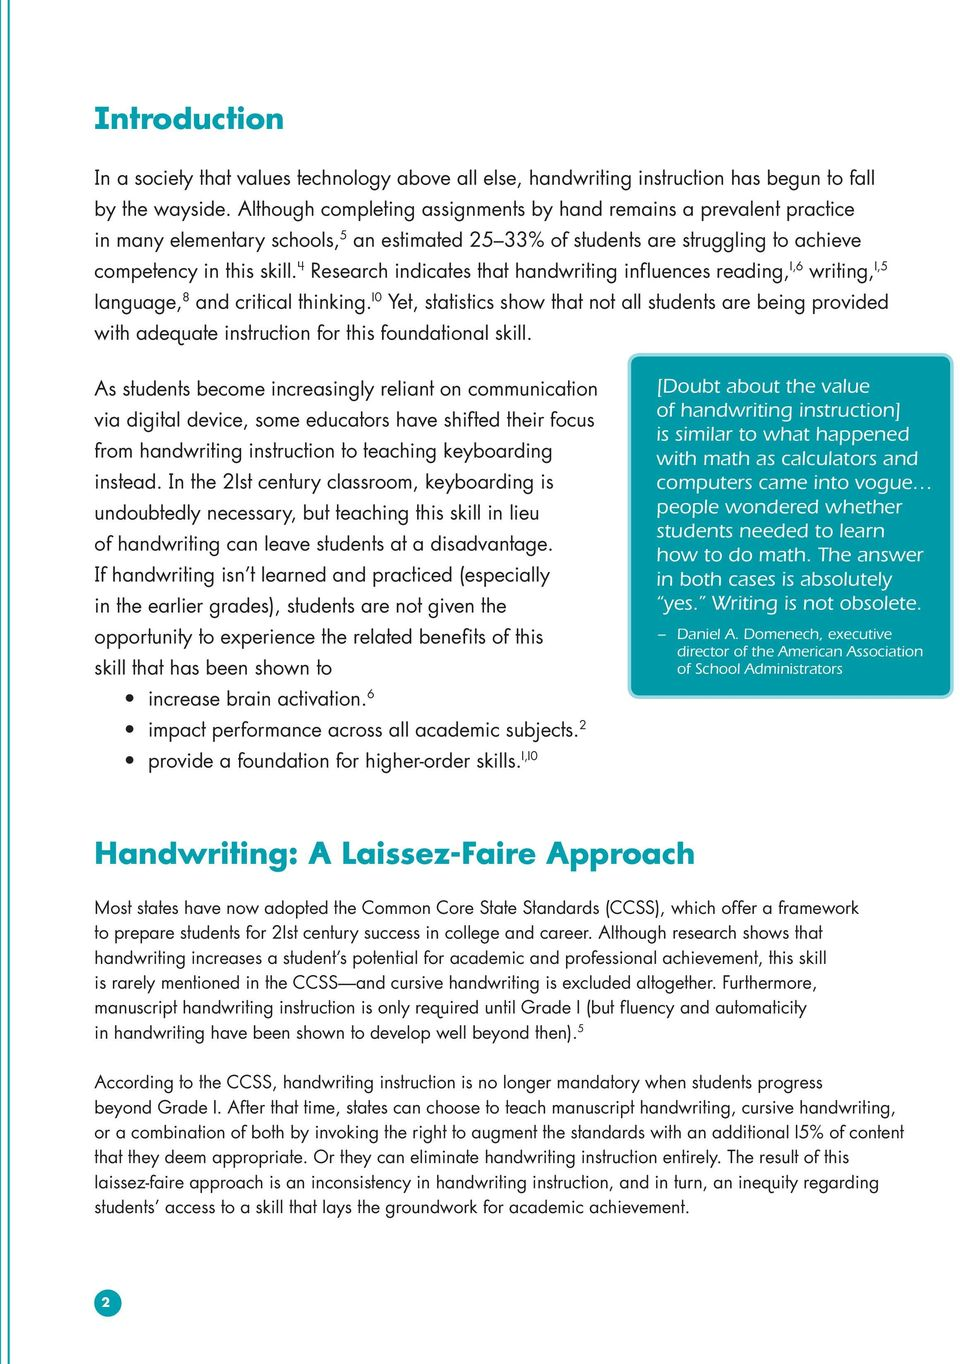 4 Research indicates that handwriting influences reading, 1,6 writing, 1,5 language, 8 and critical thinking.